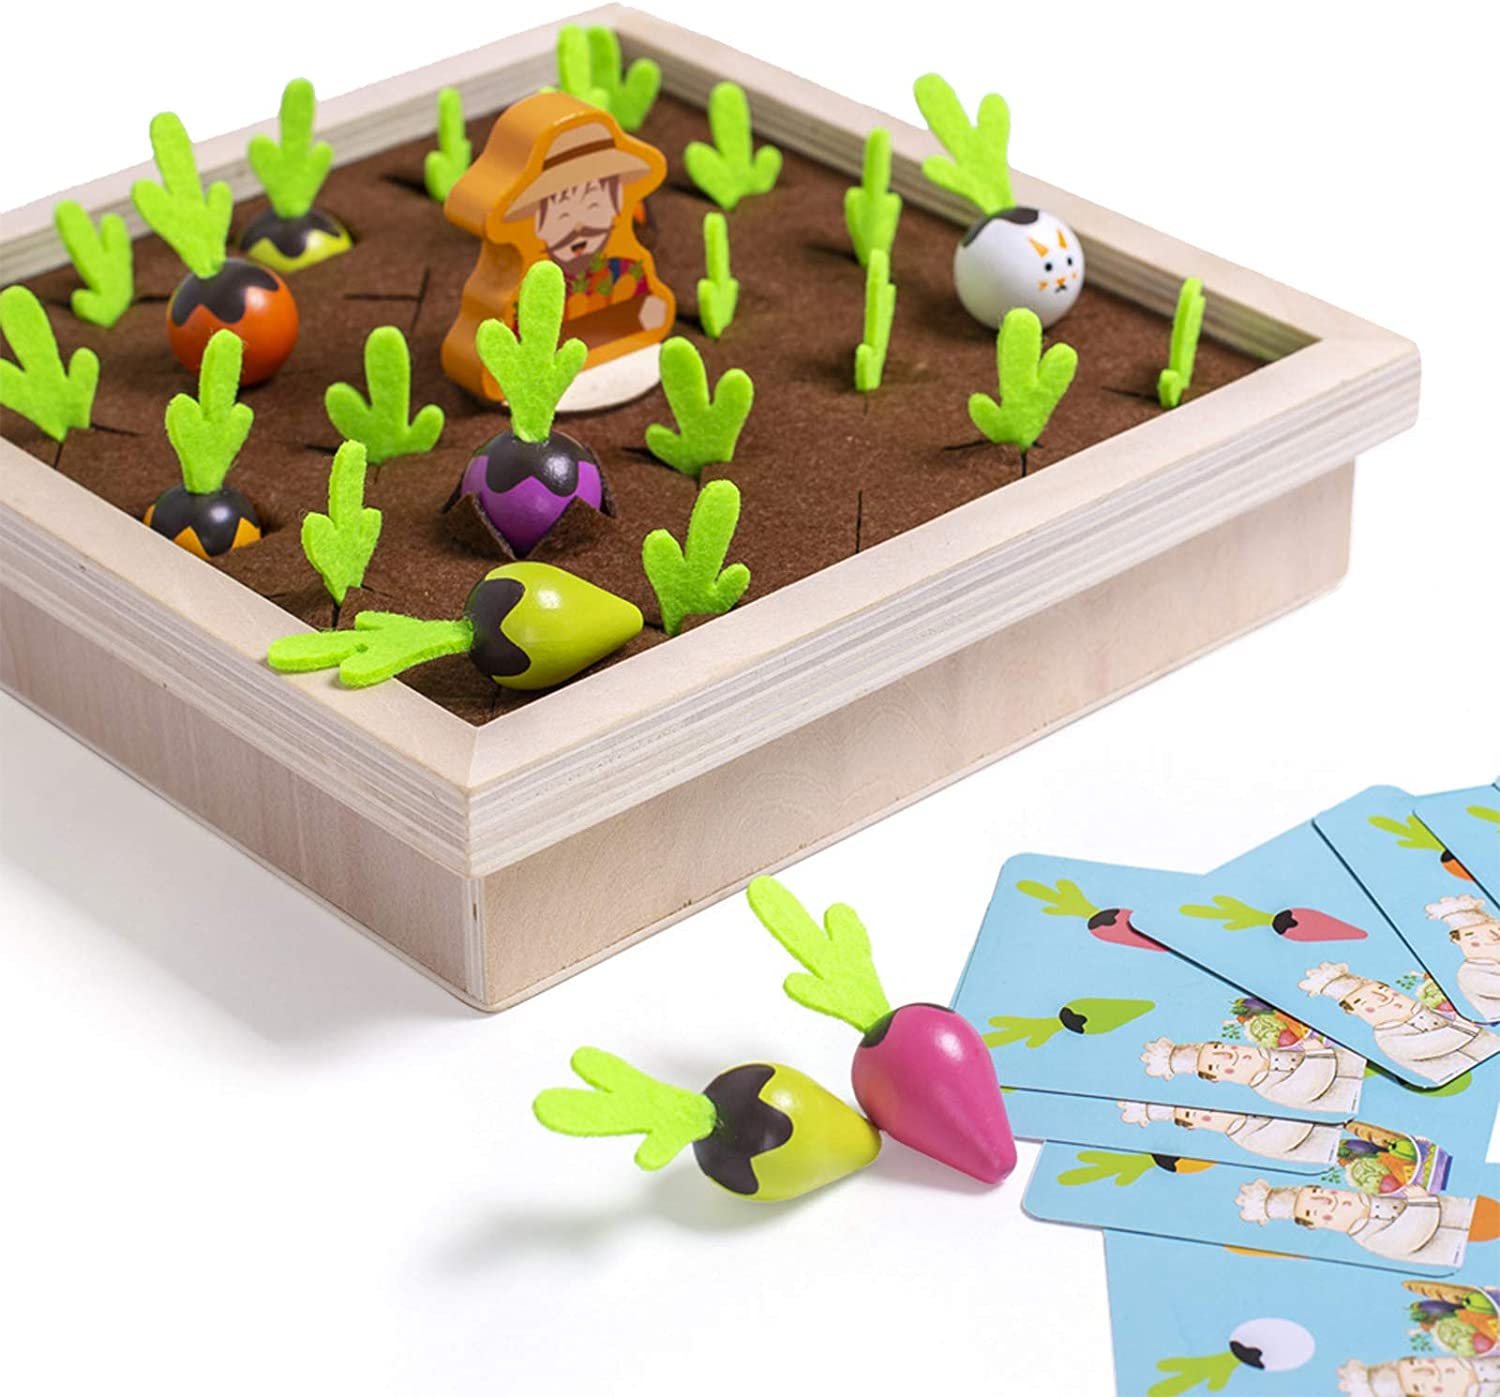 ONEST Developmental Wooden Montessori Toys Preschool Learning Toys Catching pests, Picking Mushrooms and catching Bees Motor Skill Wooden Toys for Toddlers